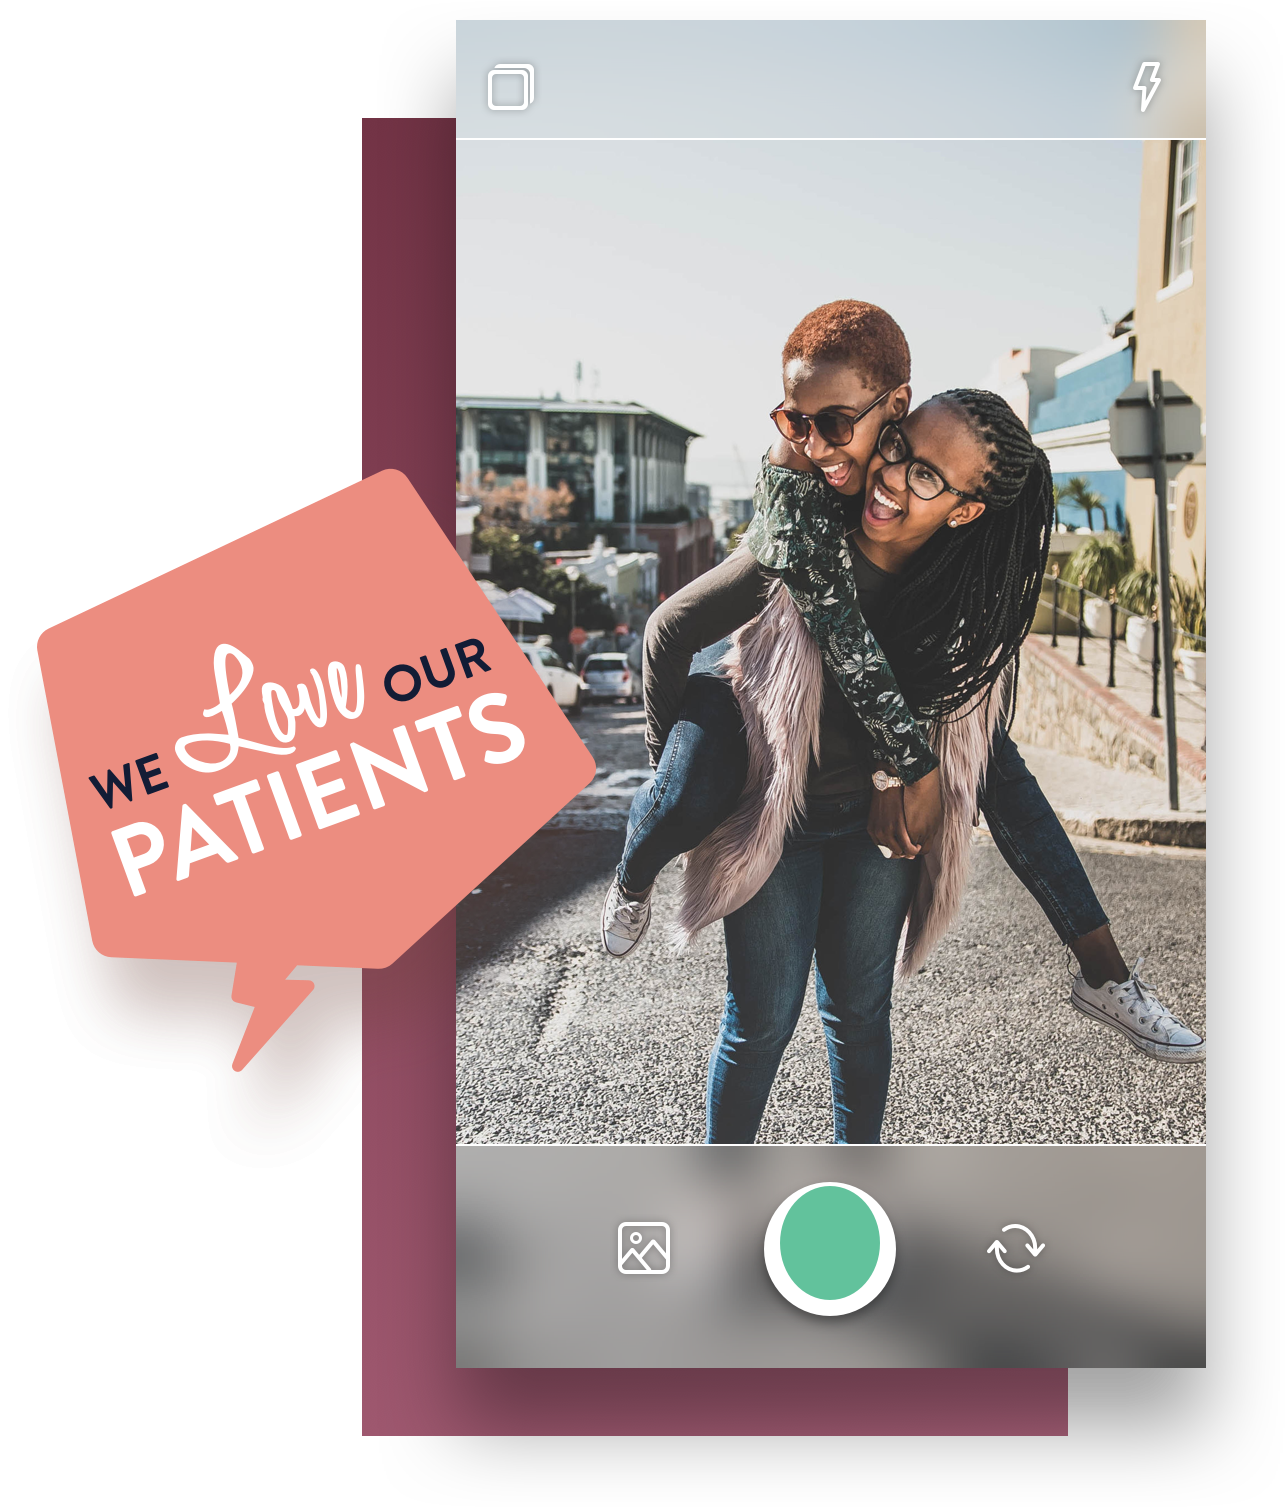 Nuvi Capture allows employee-generated content creation. This example is of two girls in the street, laughing and smiling. One is giving the other a piggyback. A rectangular purple box is behind this image. Hovering over both is a pentagonal word bubble that reads we love our patients.